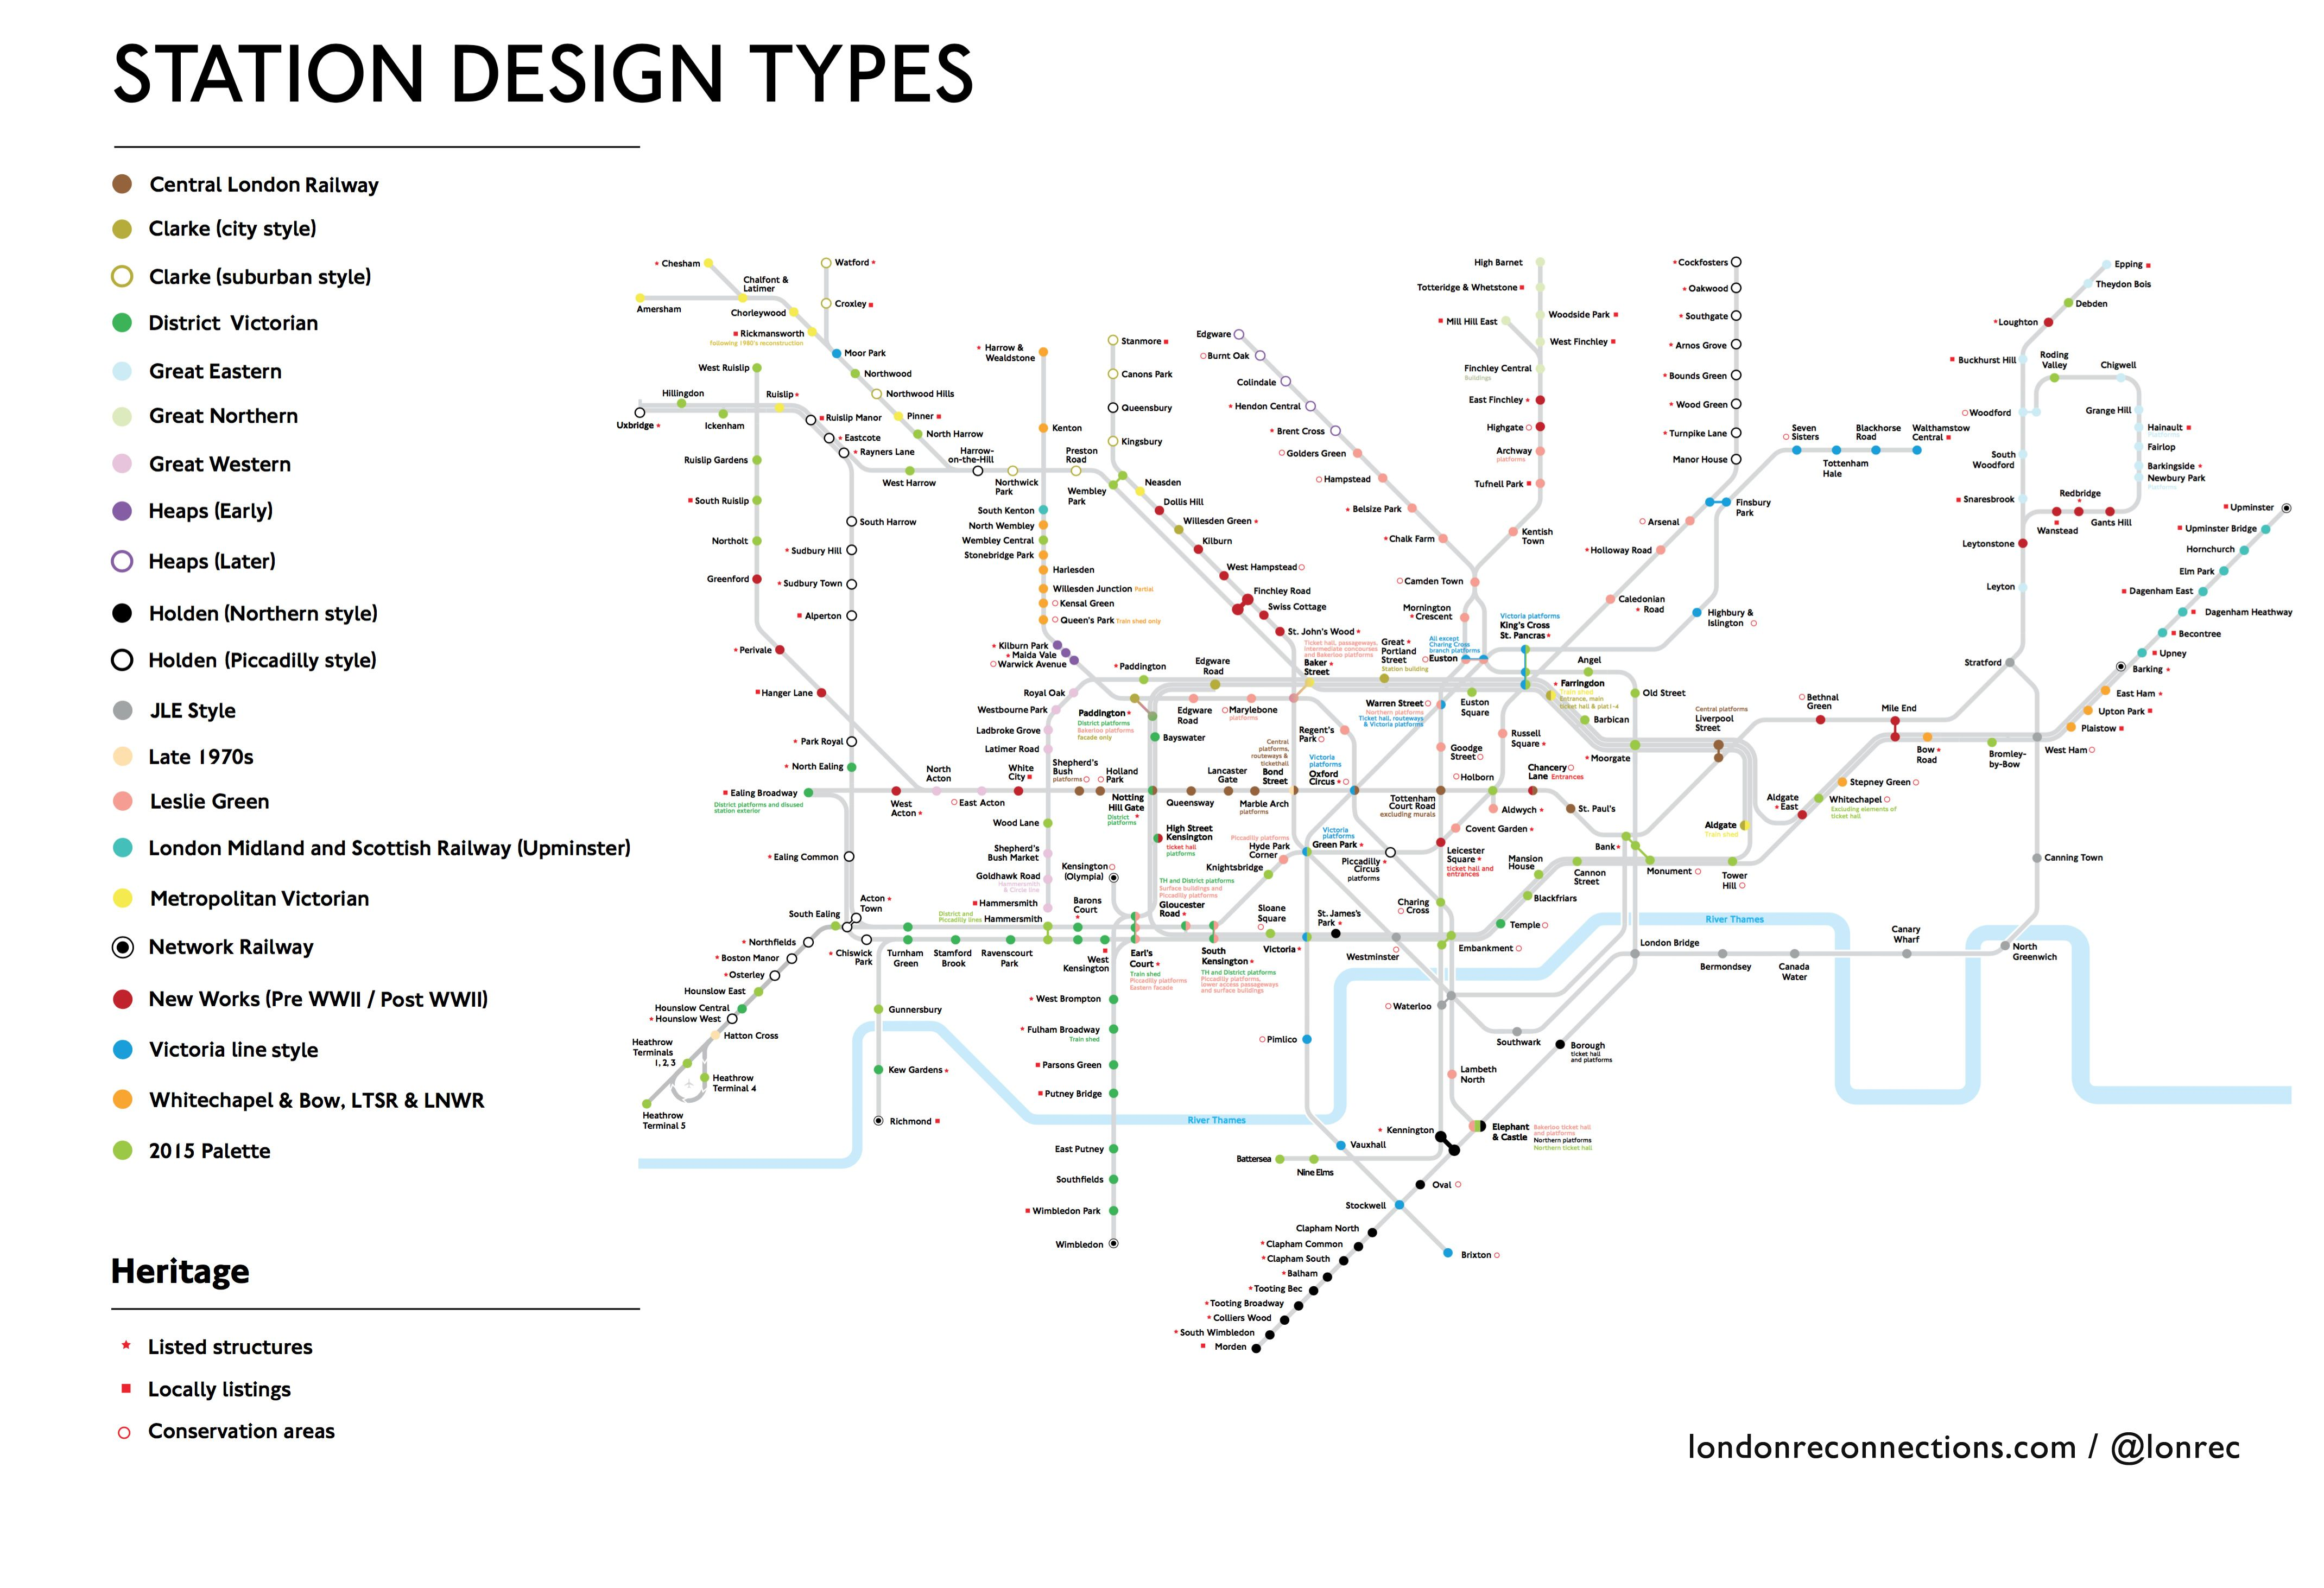 London Station Design by Type / Heritage